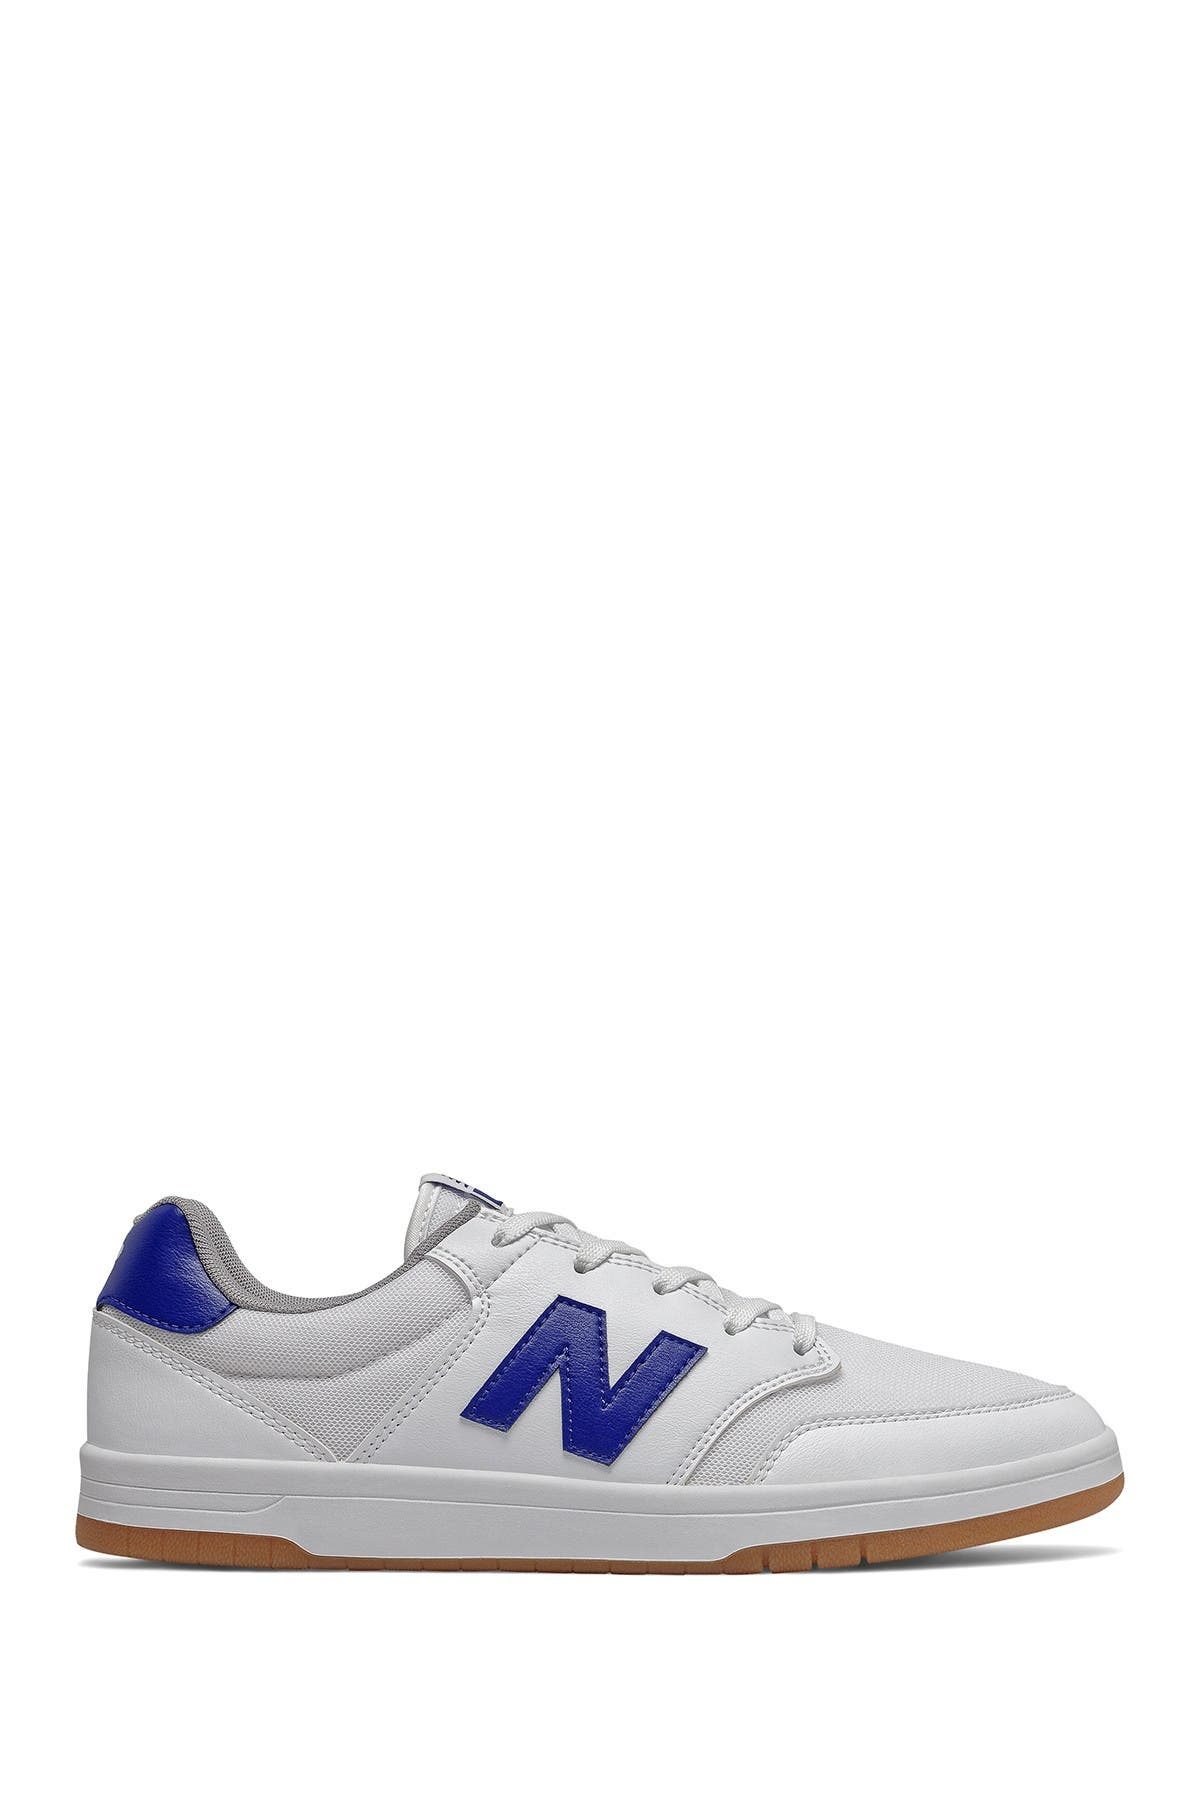 Image of New Balance 425 Skate Shoe